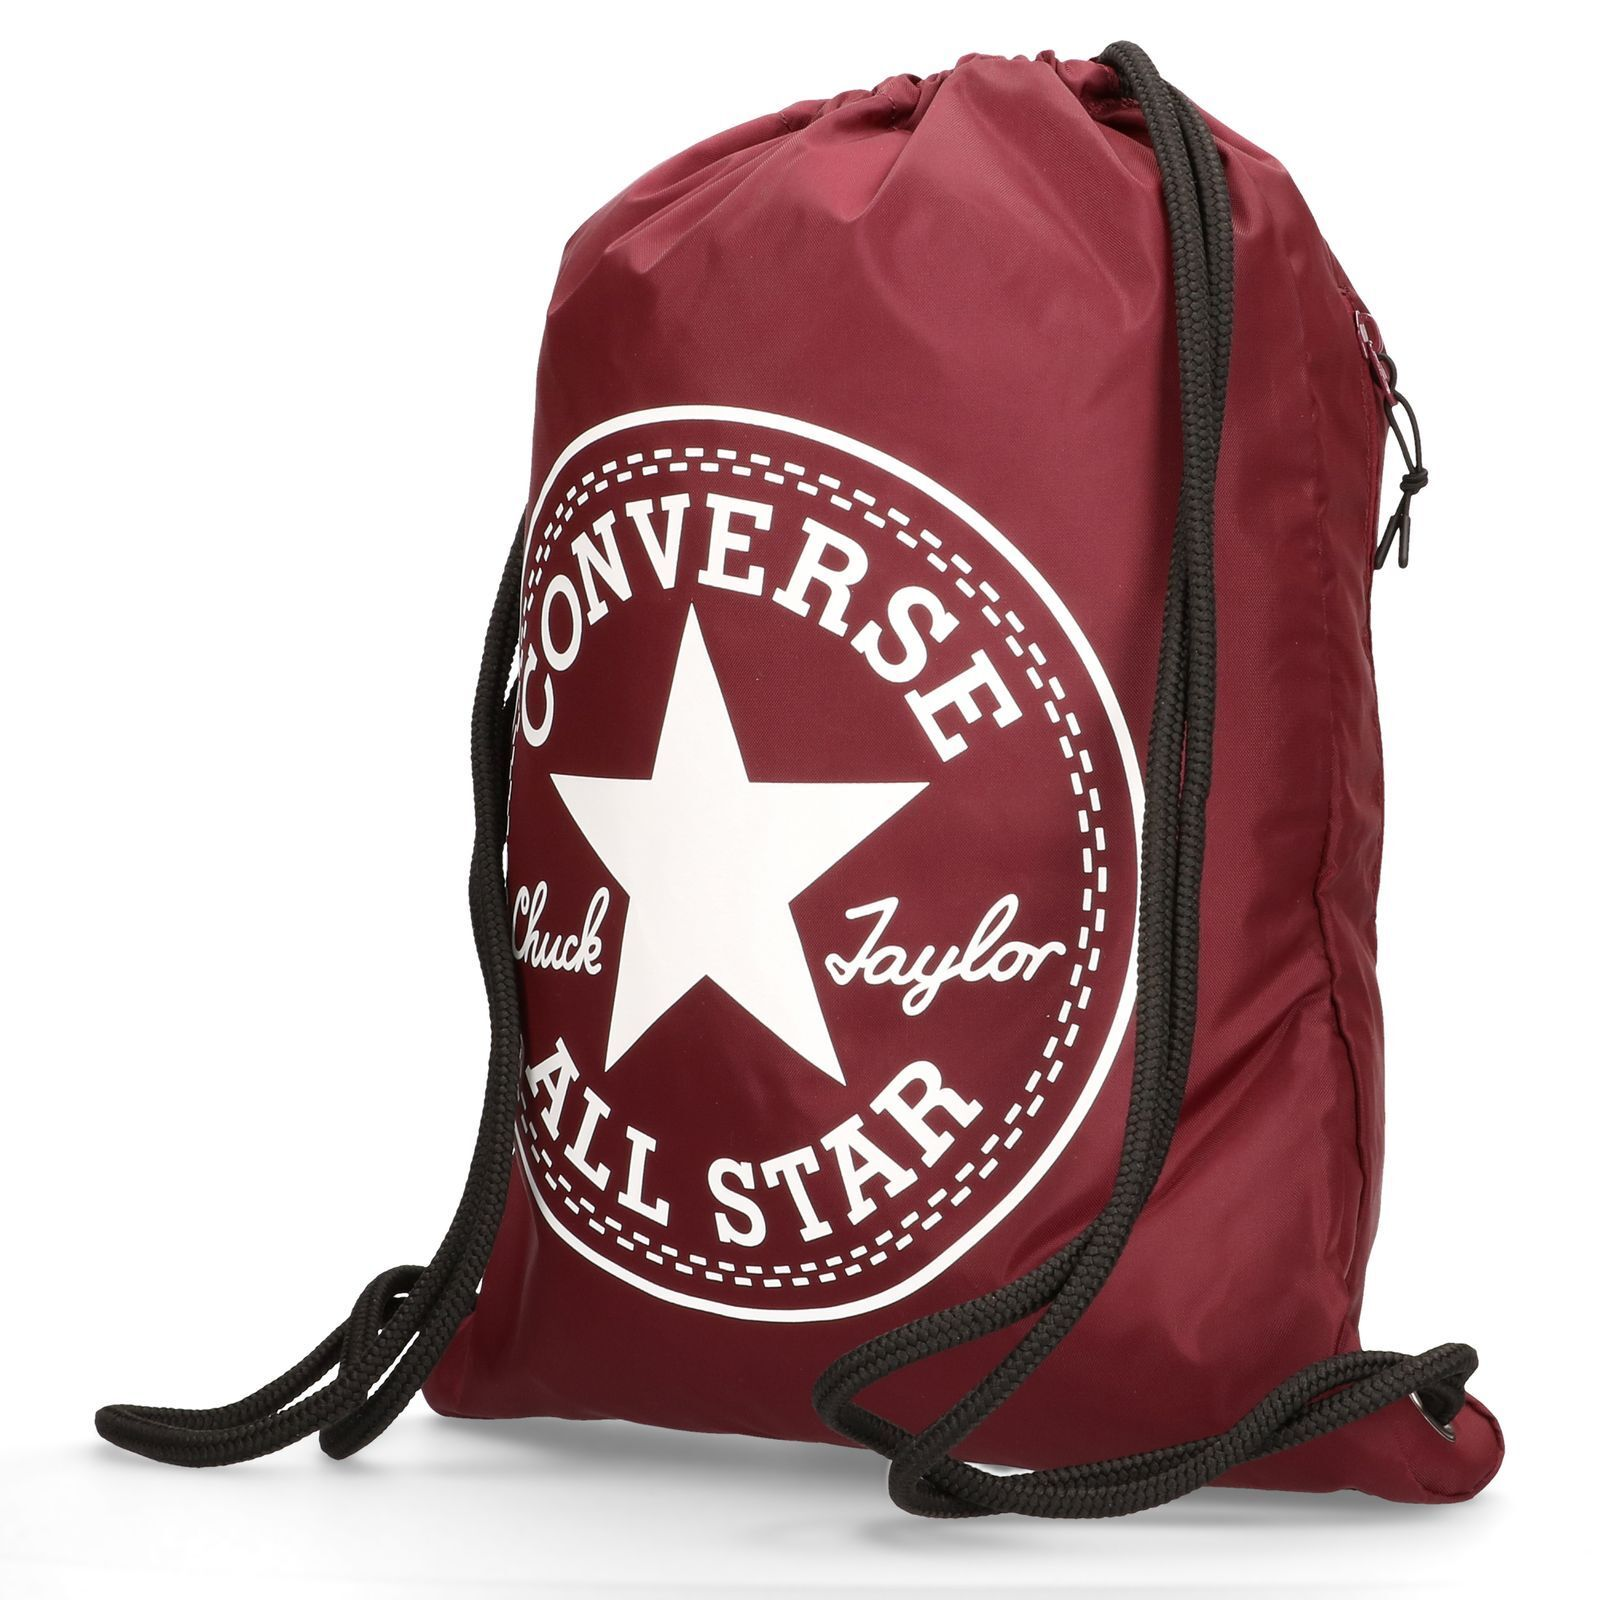 3008//6 CONVERSE ASTUCCIO SACCA ZAINETTO FLASH GYMSACK  BAG BACK TO SCHOOL OFFICE